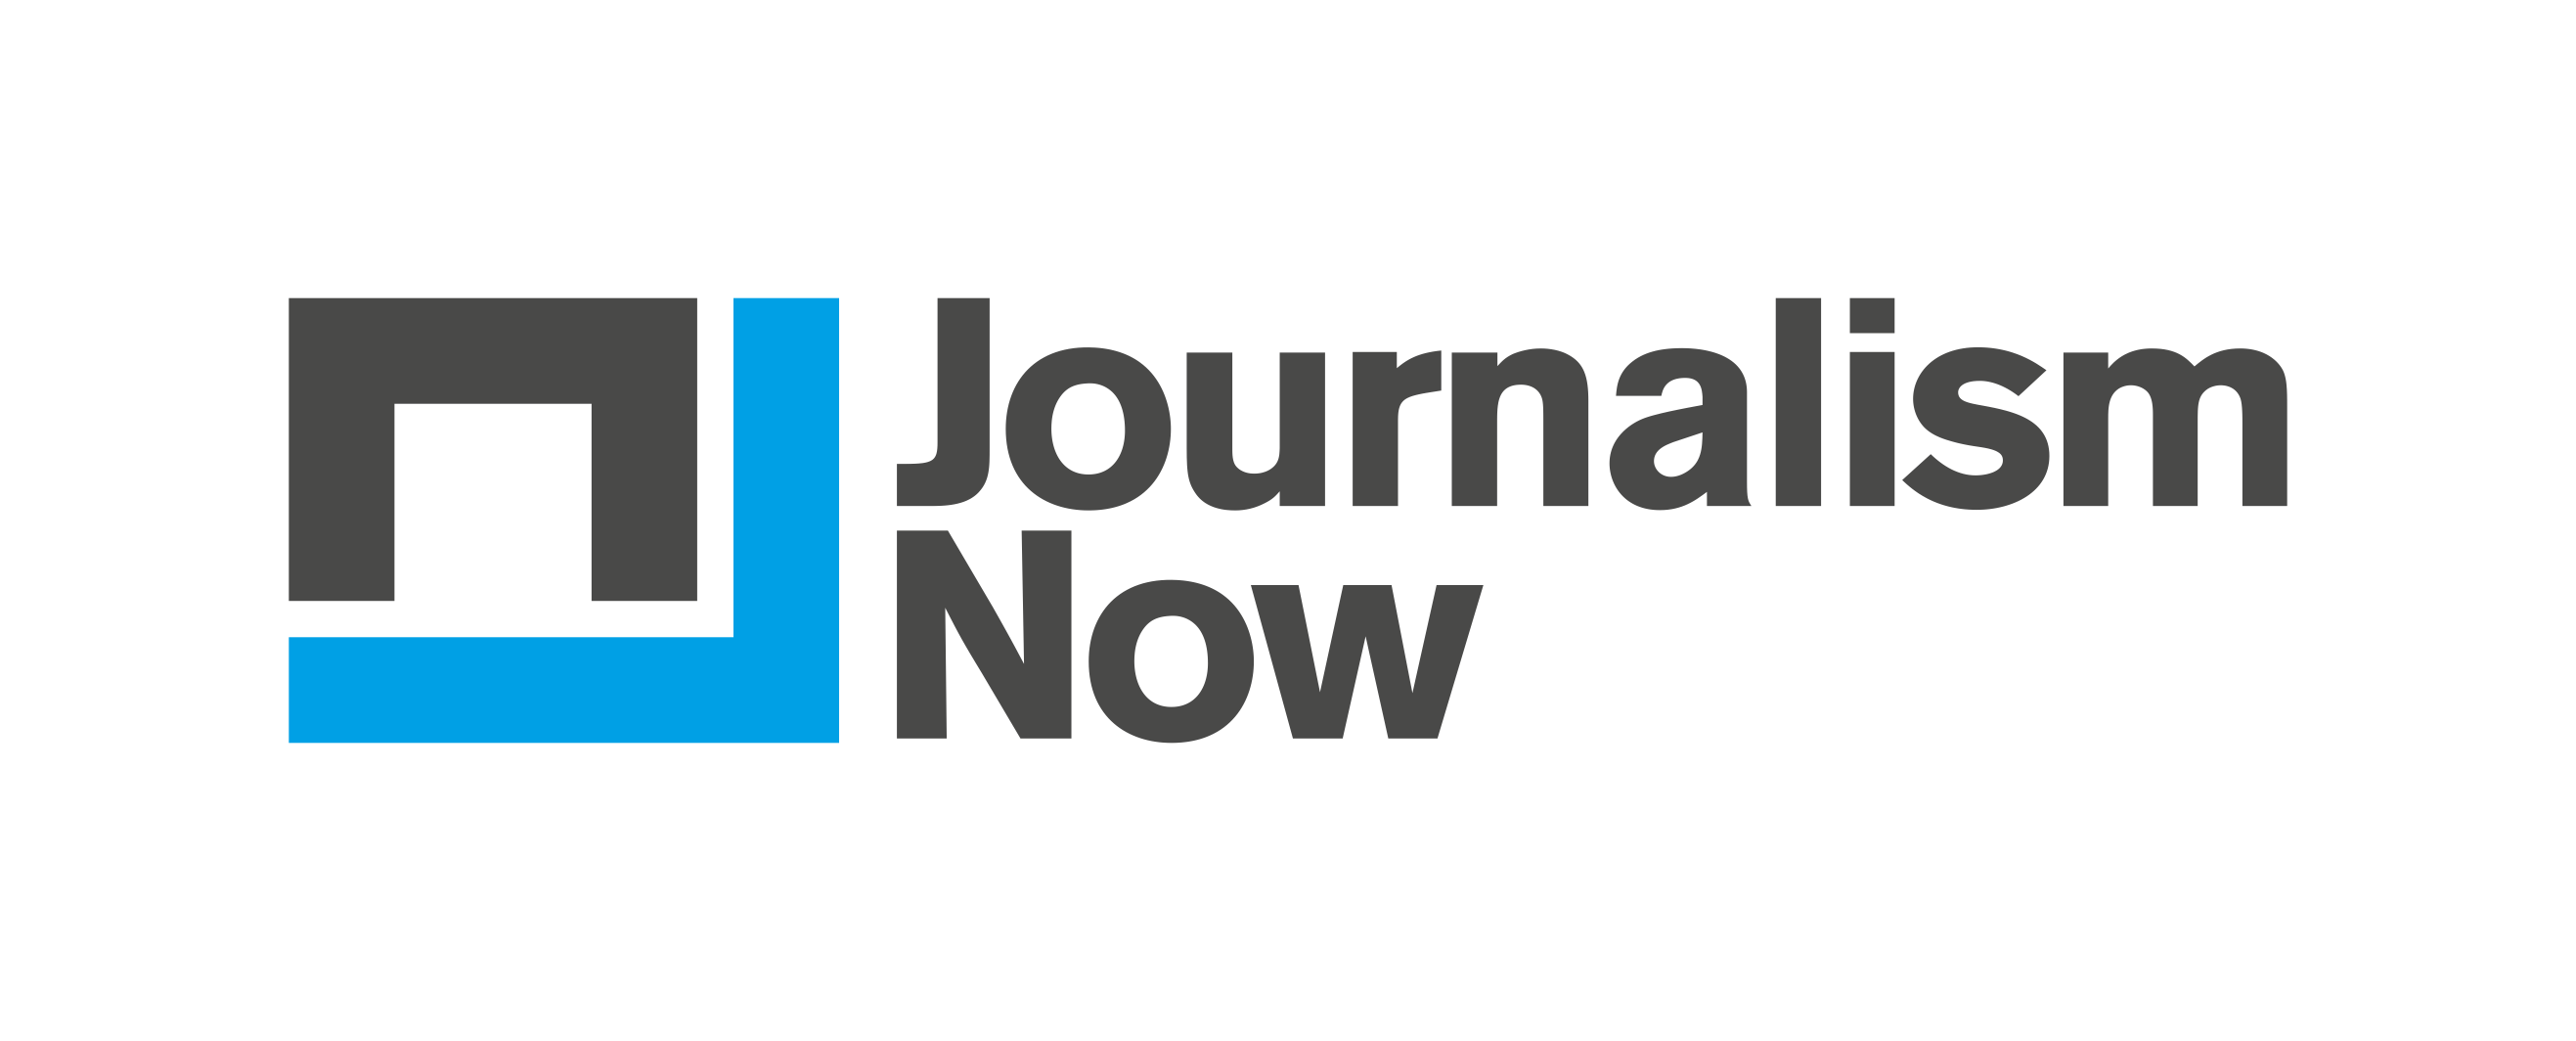 Journalism Now | The Future of E-Learning | Thomson Foundation